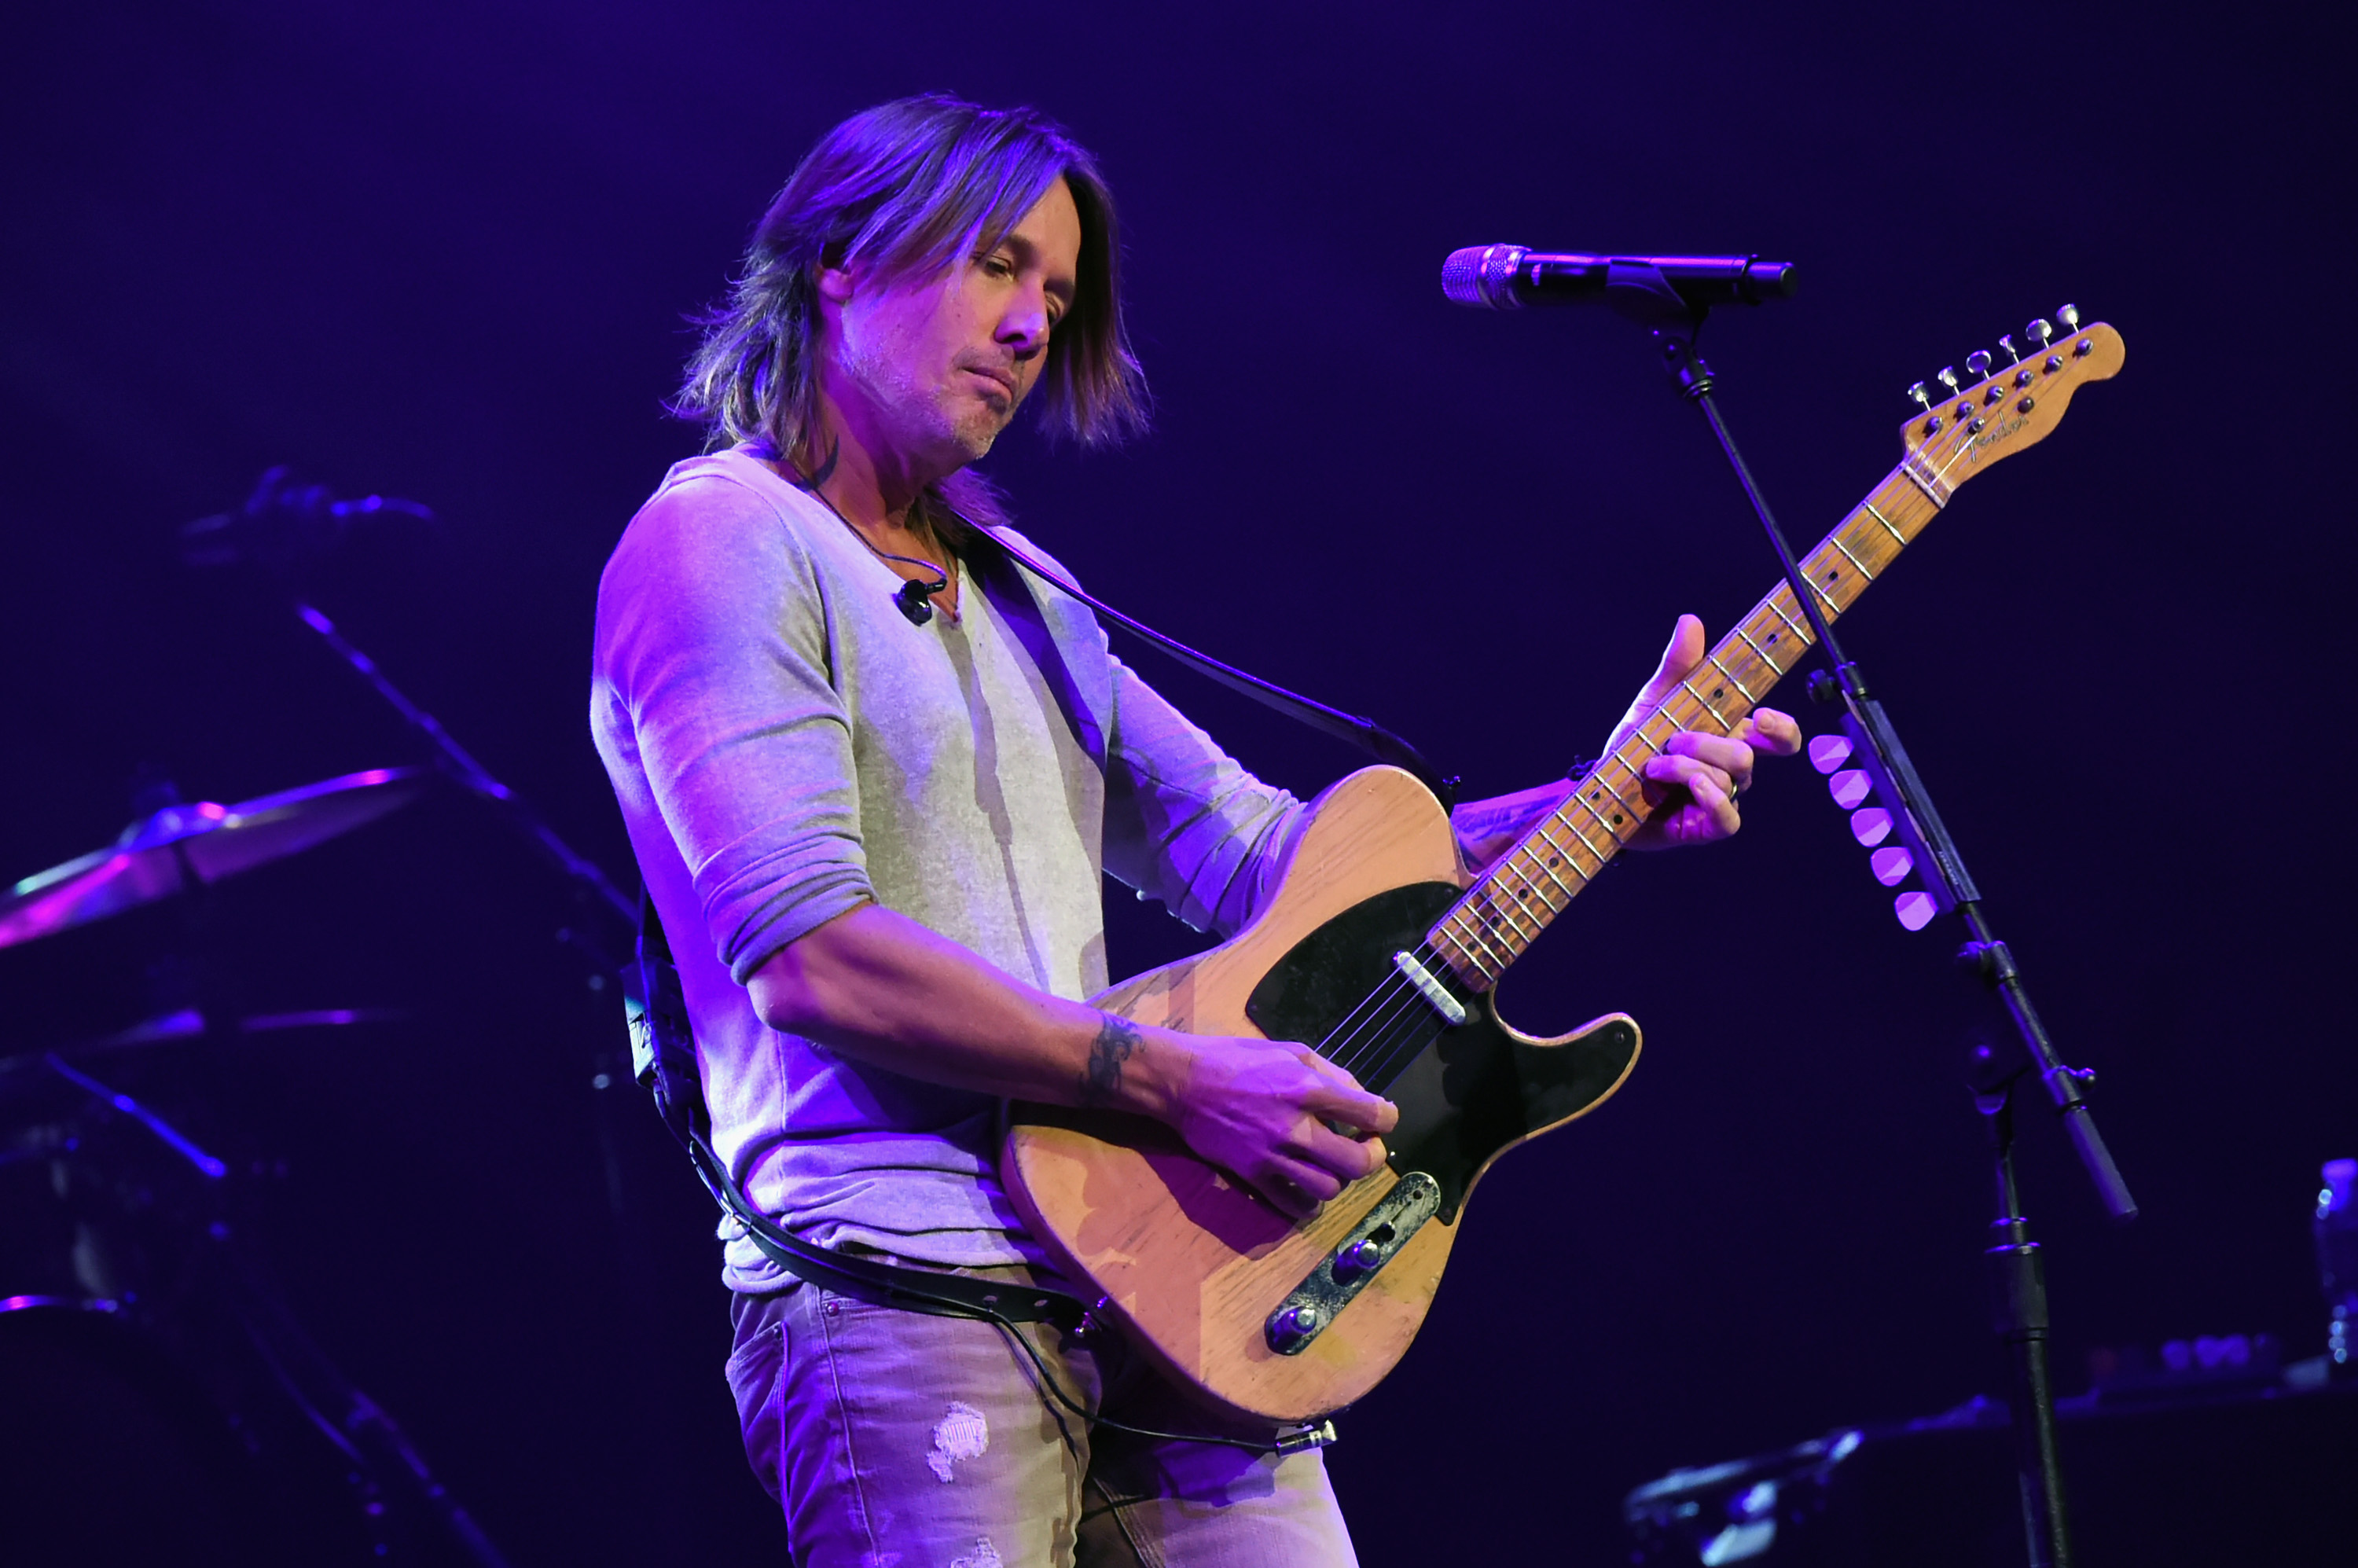 Everything We Know About Keith Urban's New Album, 'Graffiti U'